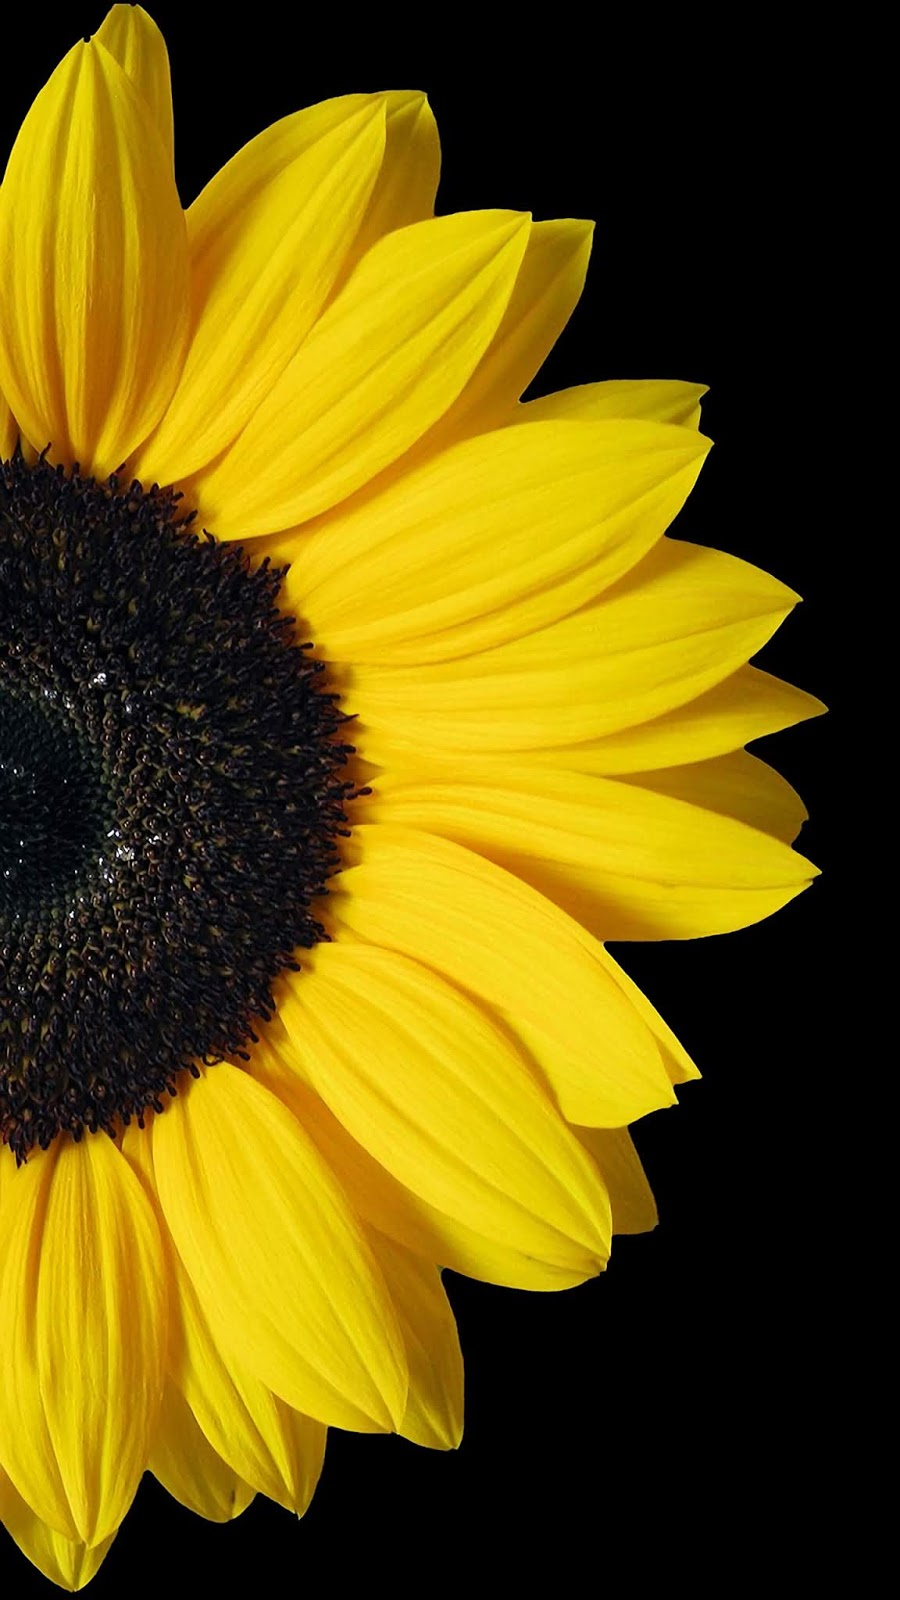 Sunflower AMOLED